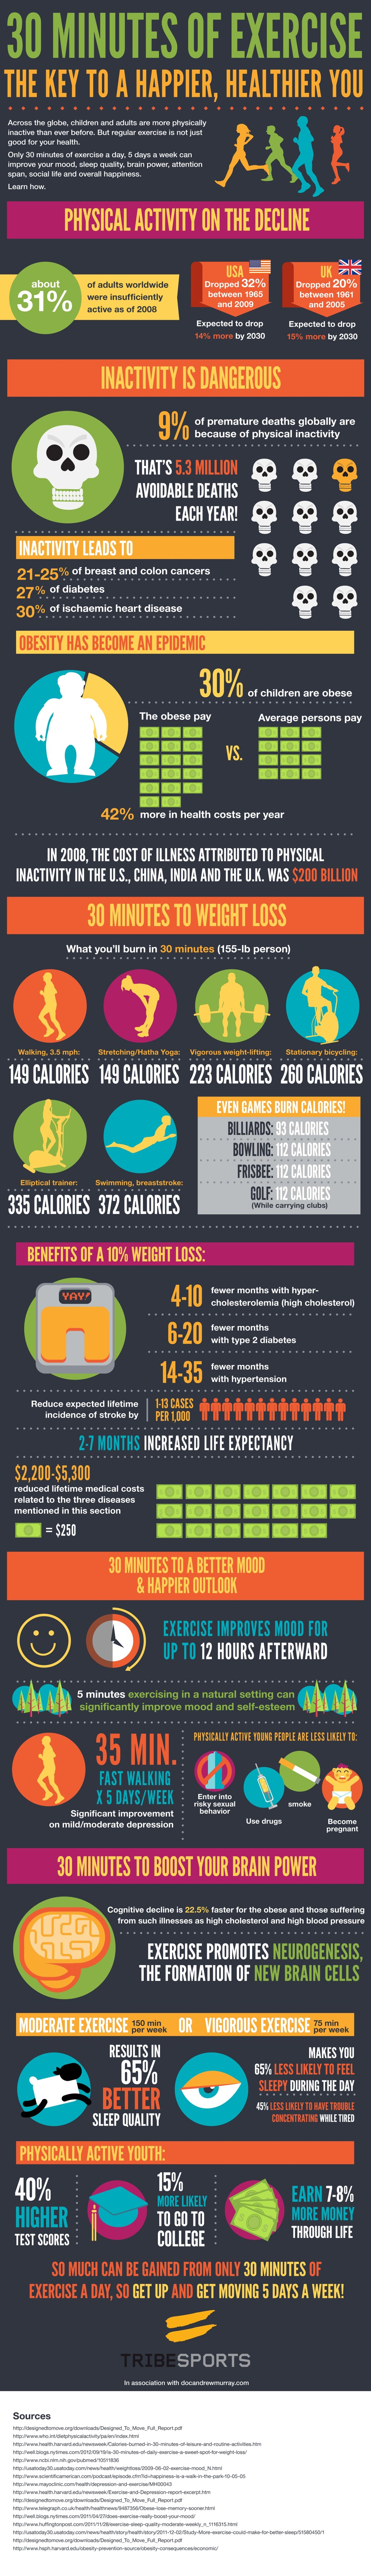 30 Minutes of Exercise for a Longer Life